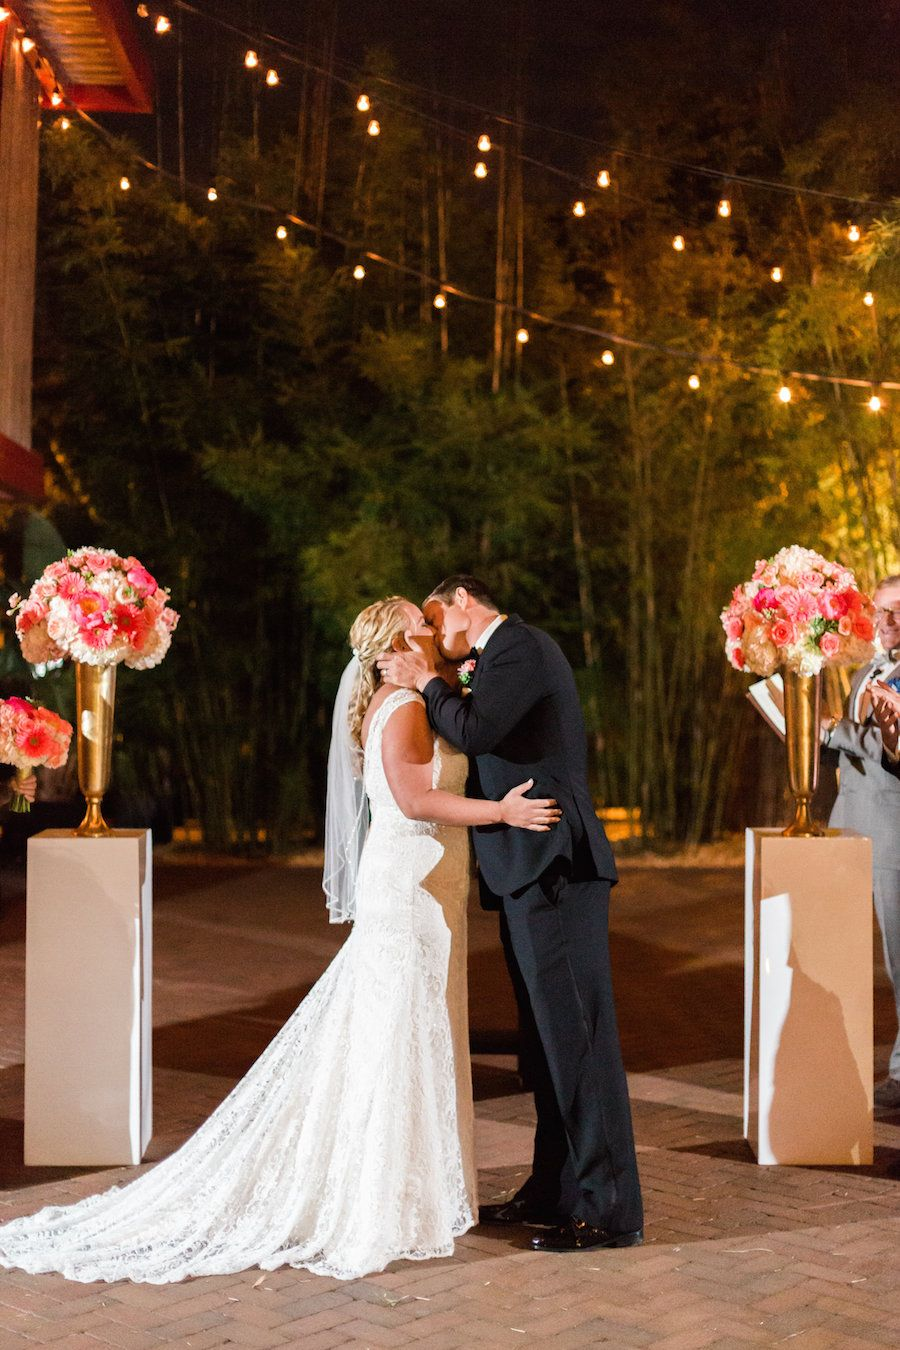 Outdoor, St Pete Wedding Ceremony, Bride and Groom First Kiss Portrait| St. Pete Wedding and Event Space NOVA 535 Black, Gold and Pink Downtown St. Petersburg Wedding